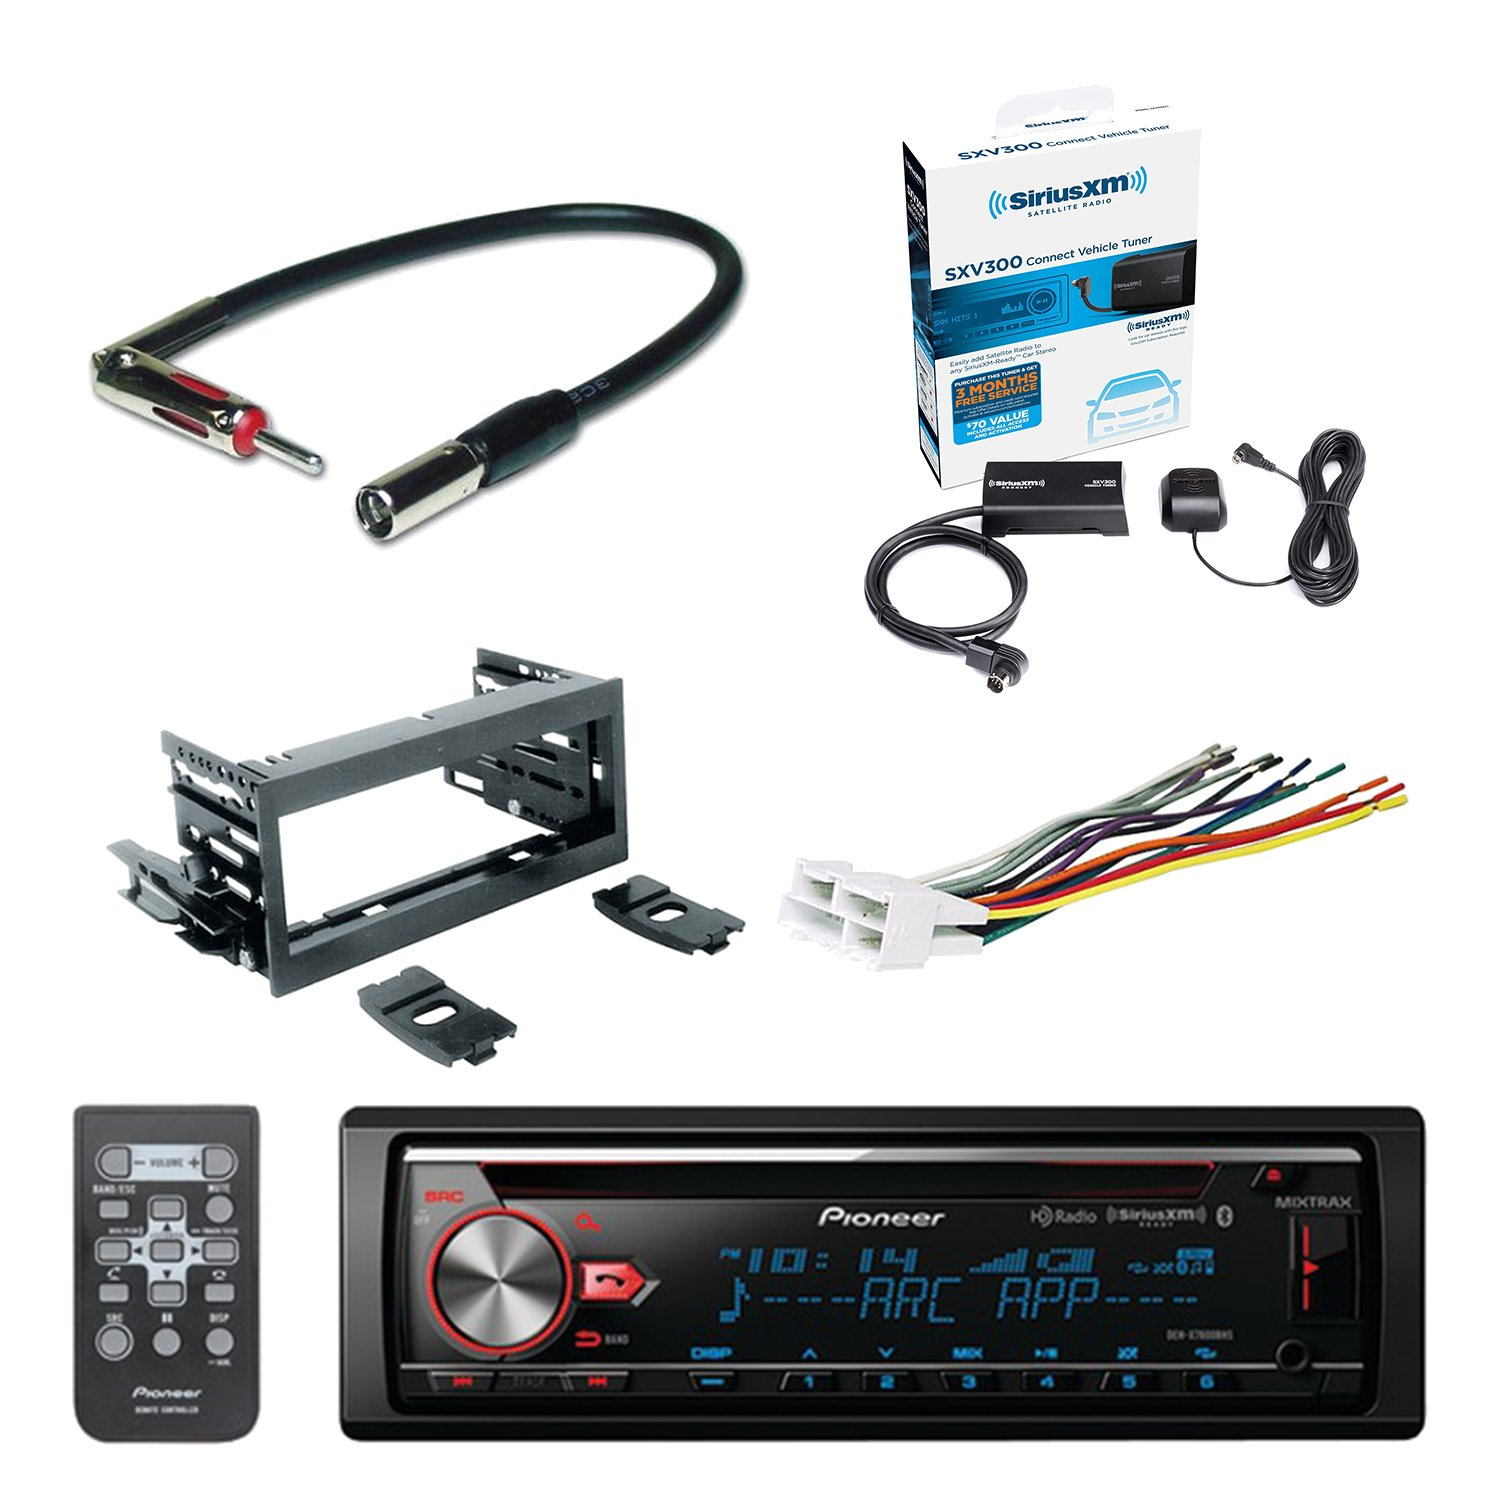 Pioneer CD Bluetooth Receiver with Enhanced Audio Functions with SiriusXM Satellite Radio Vehicle Tuner Kit, Scosche Dash Kit, Scosche GM Micro/Delco Antenna Adapter & Scosche Radio Wiring Harness